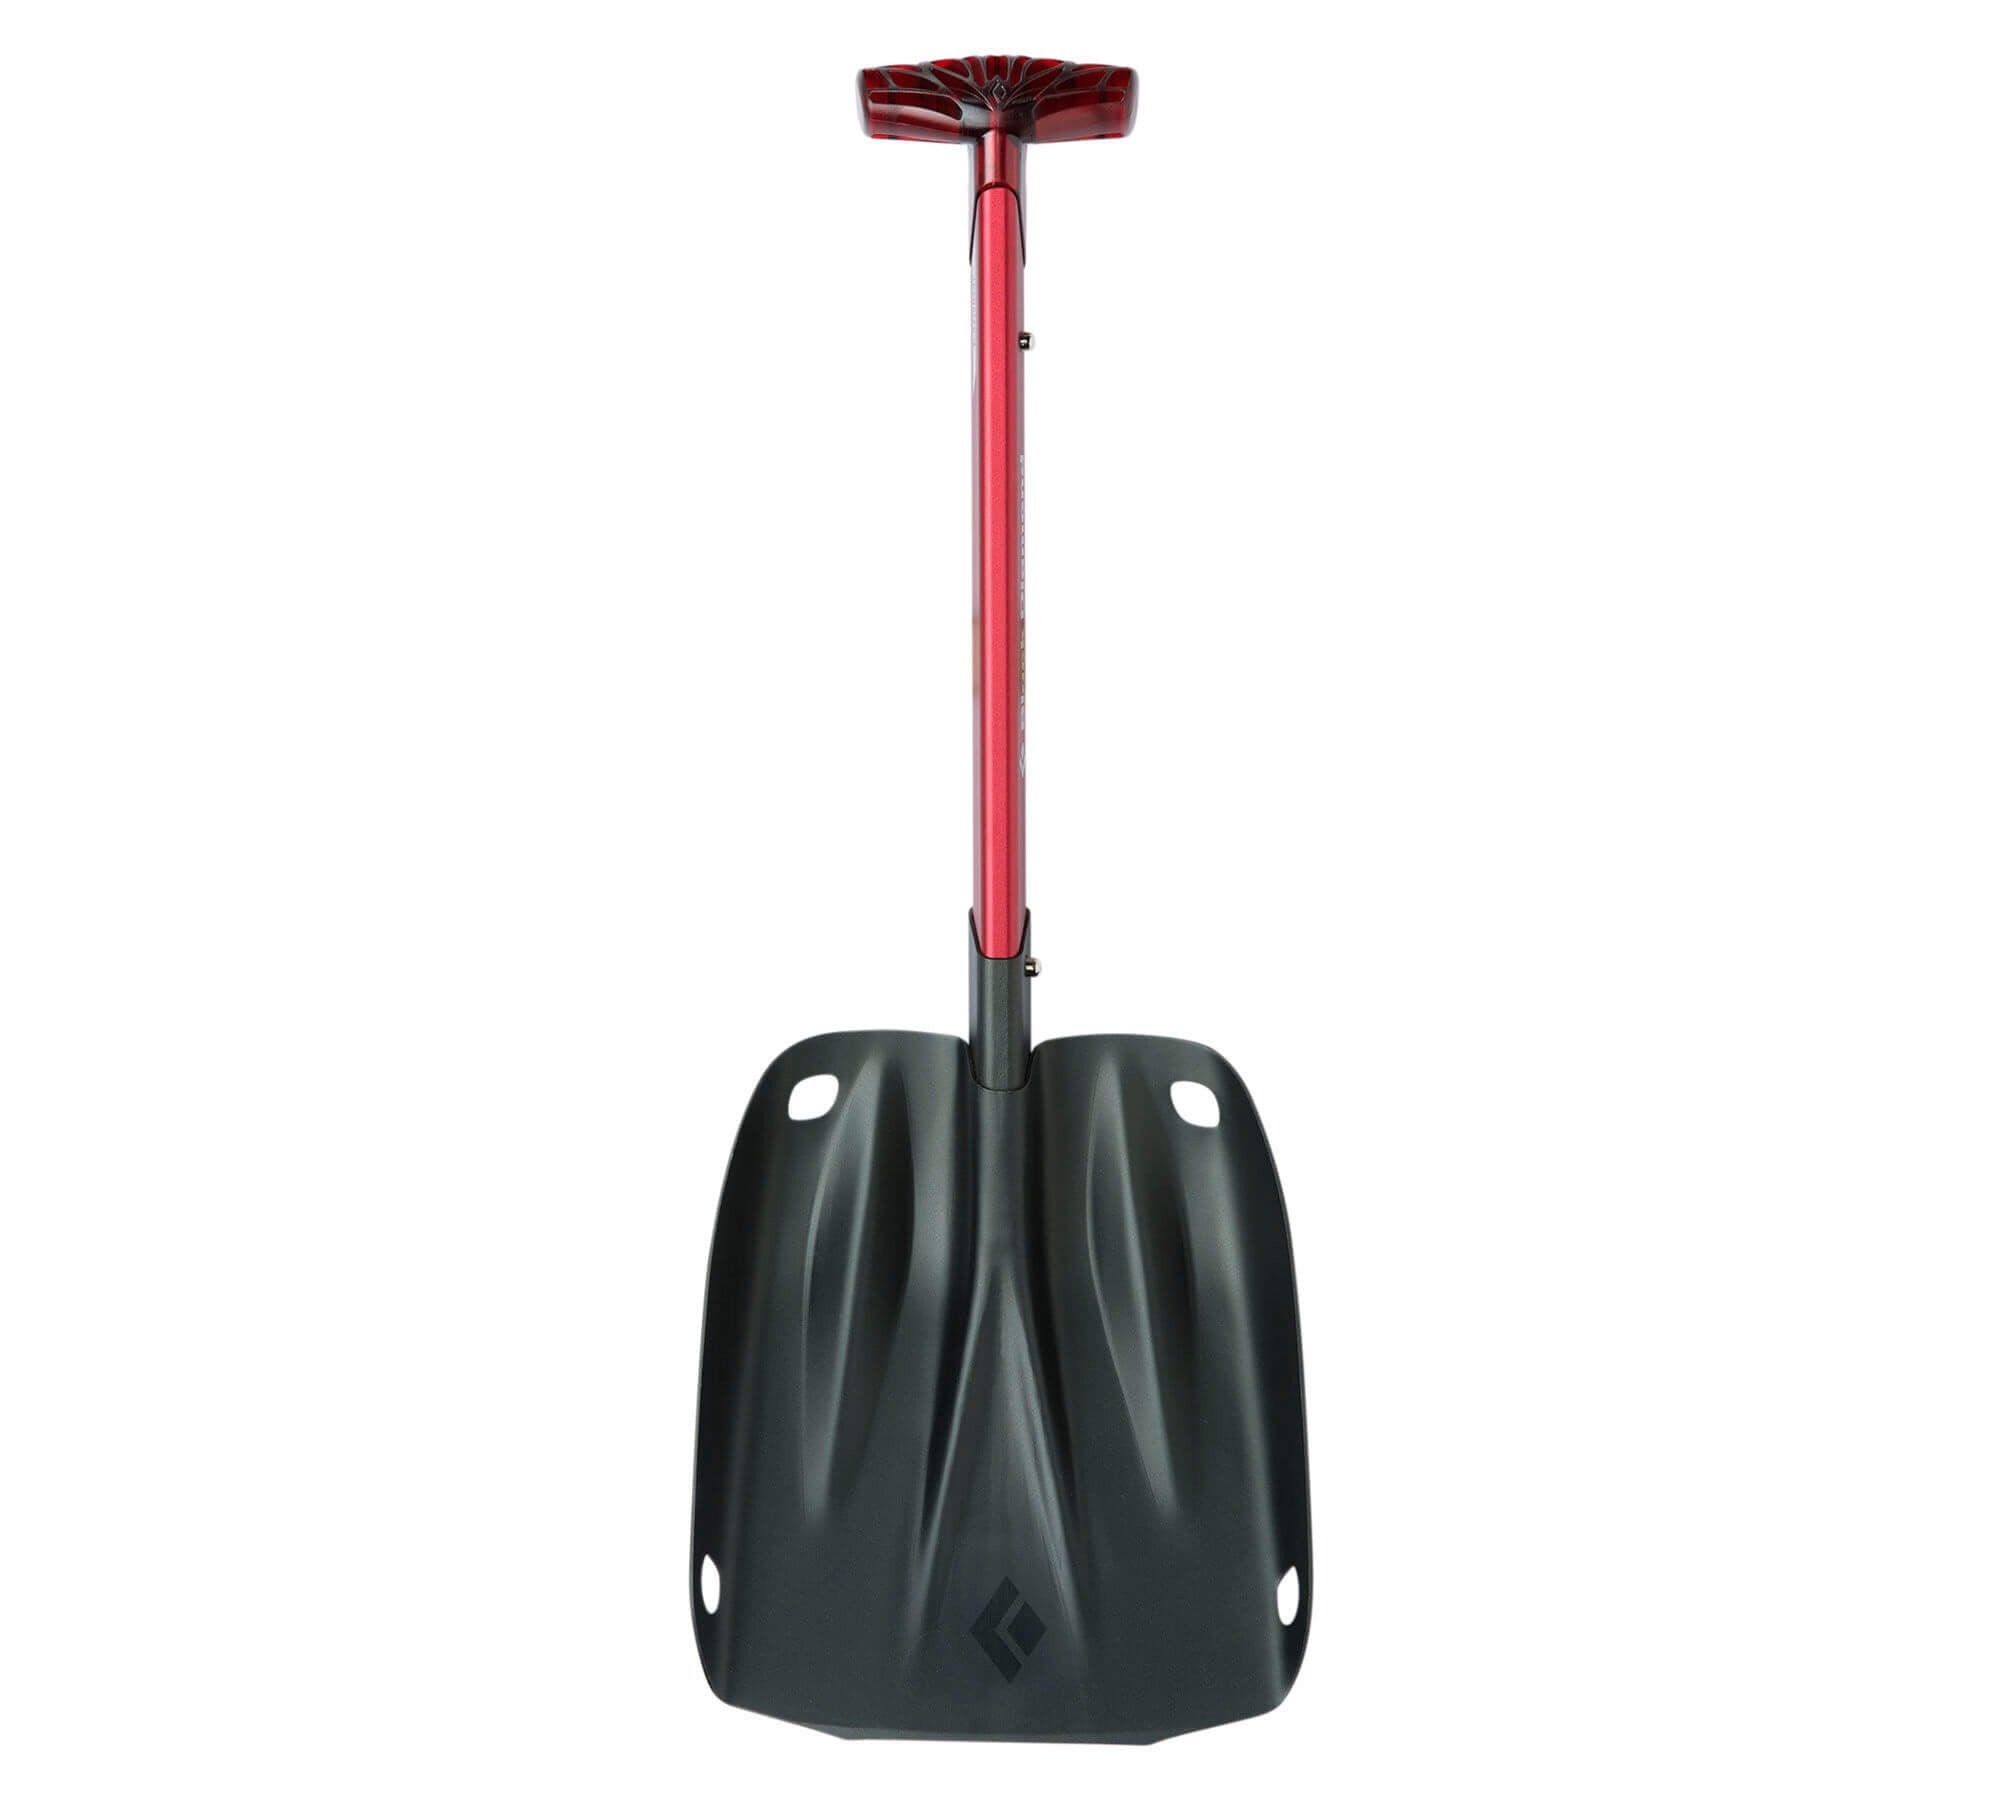 Transfer 3 Shovel